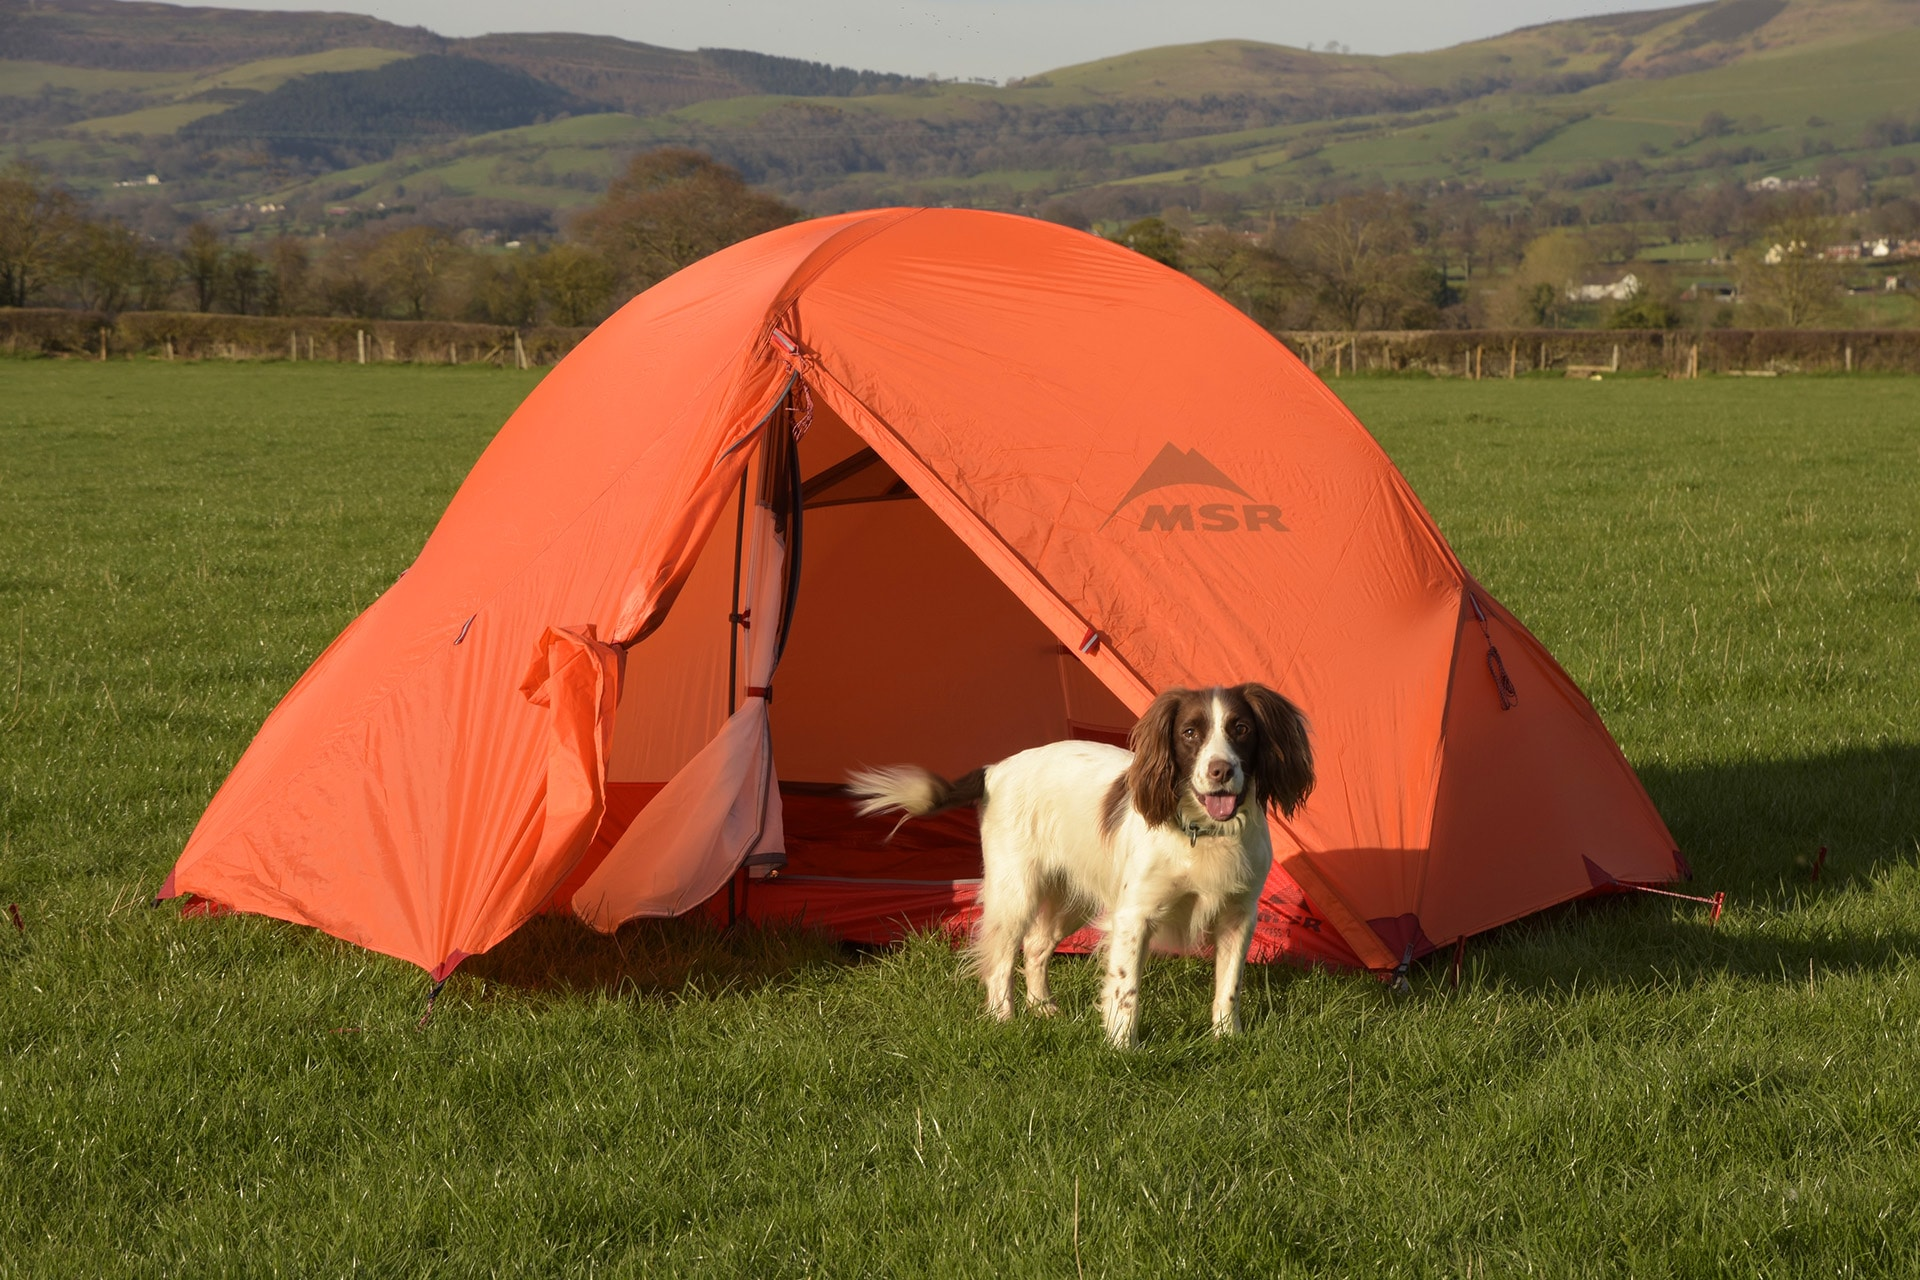 Best 4-Season Tents - Top Rated and Reviewed